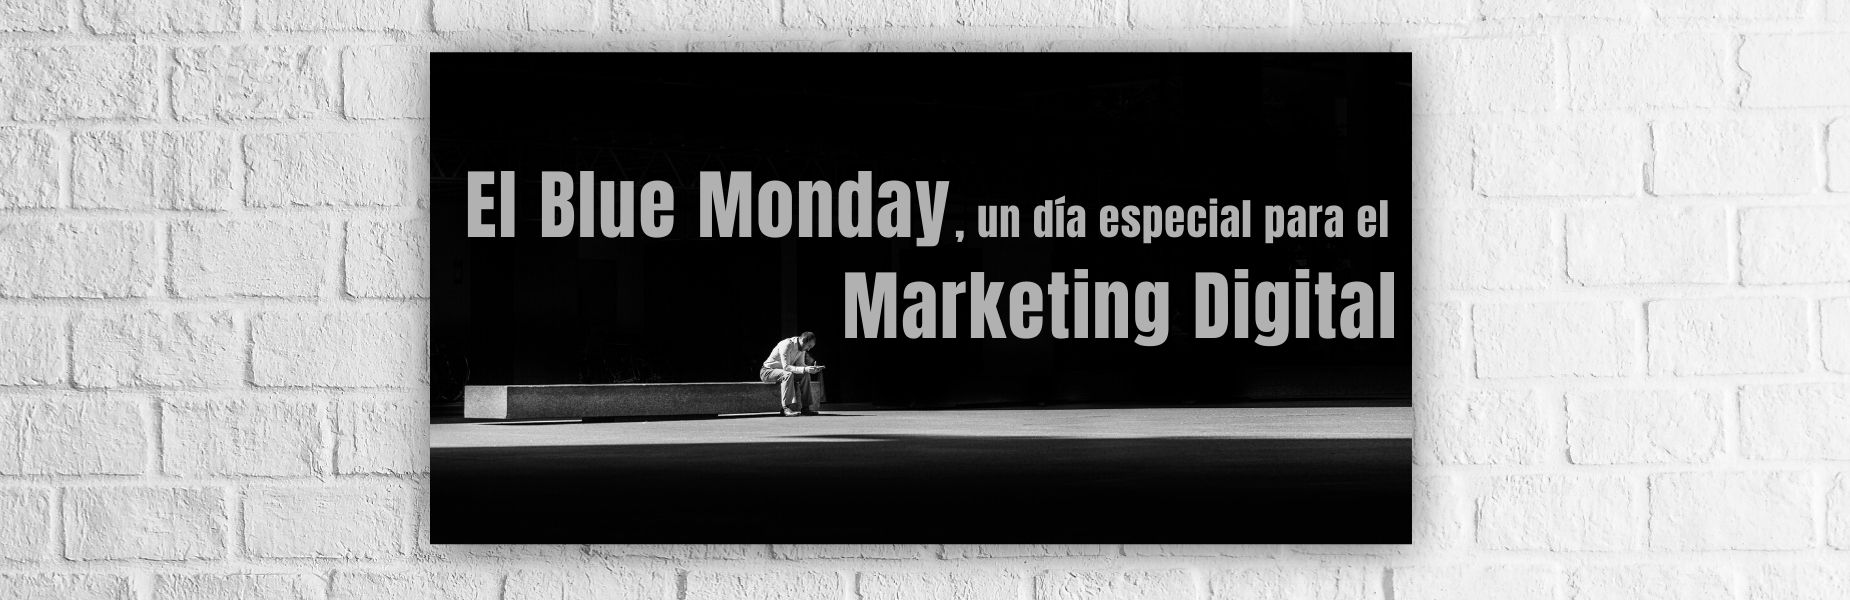 Blue Monday Marketing digital